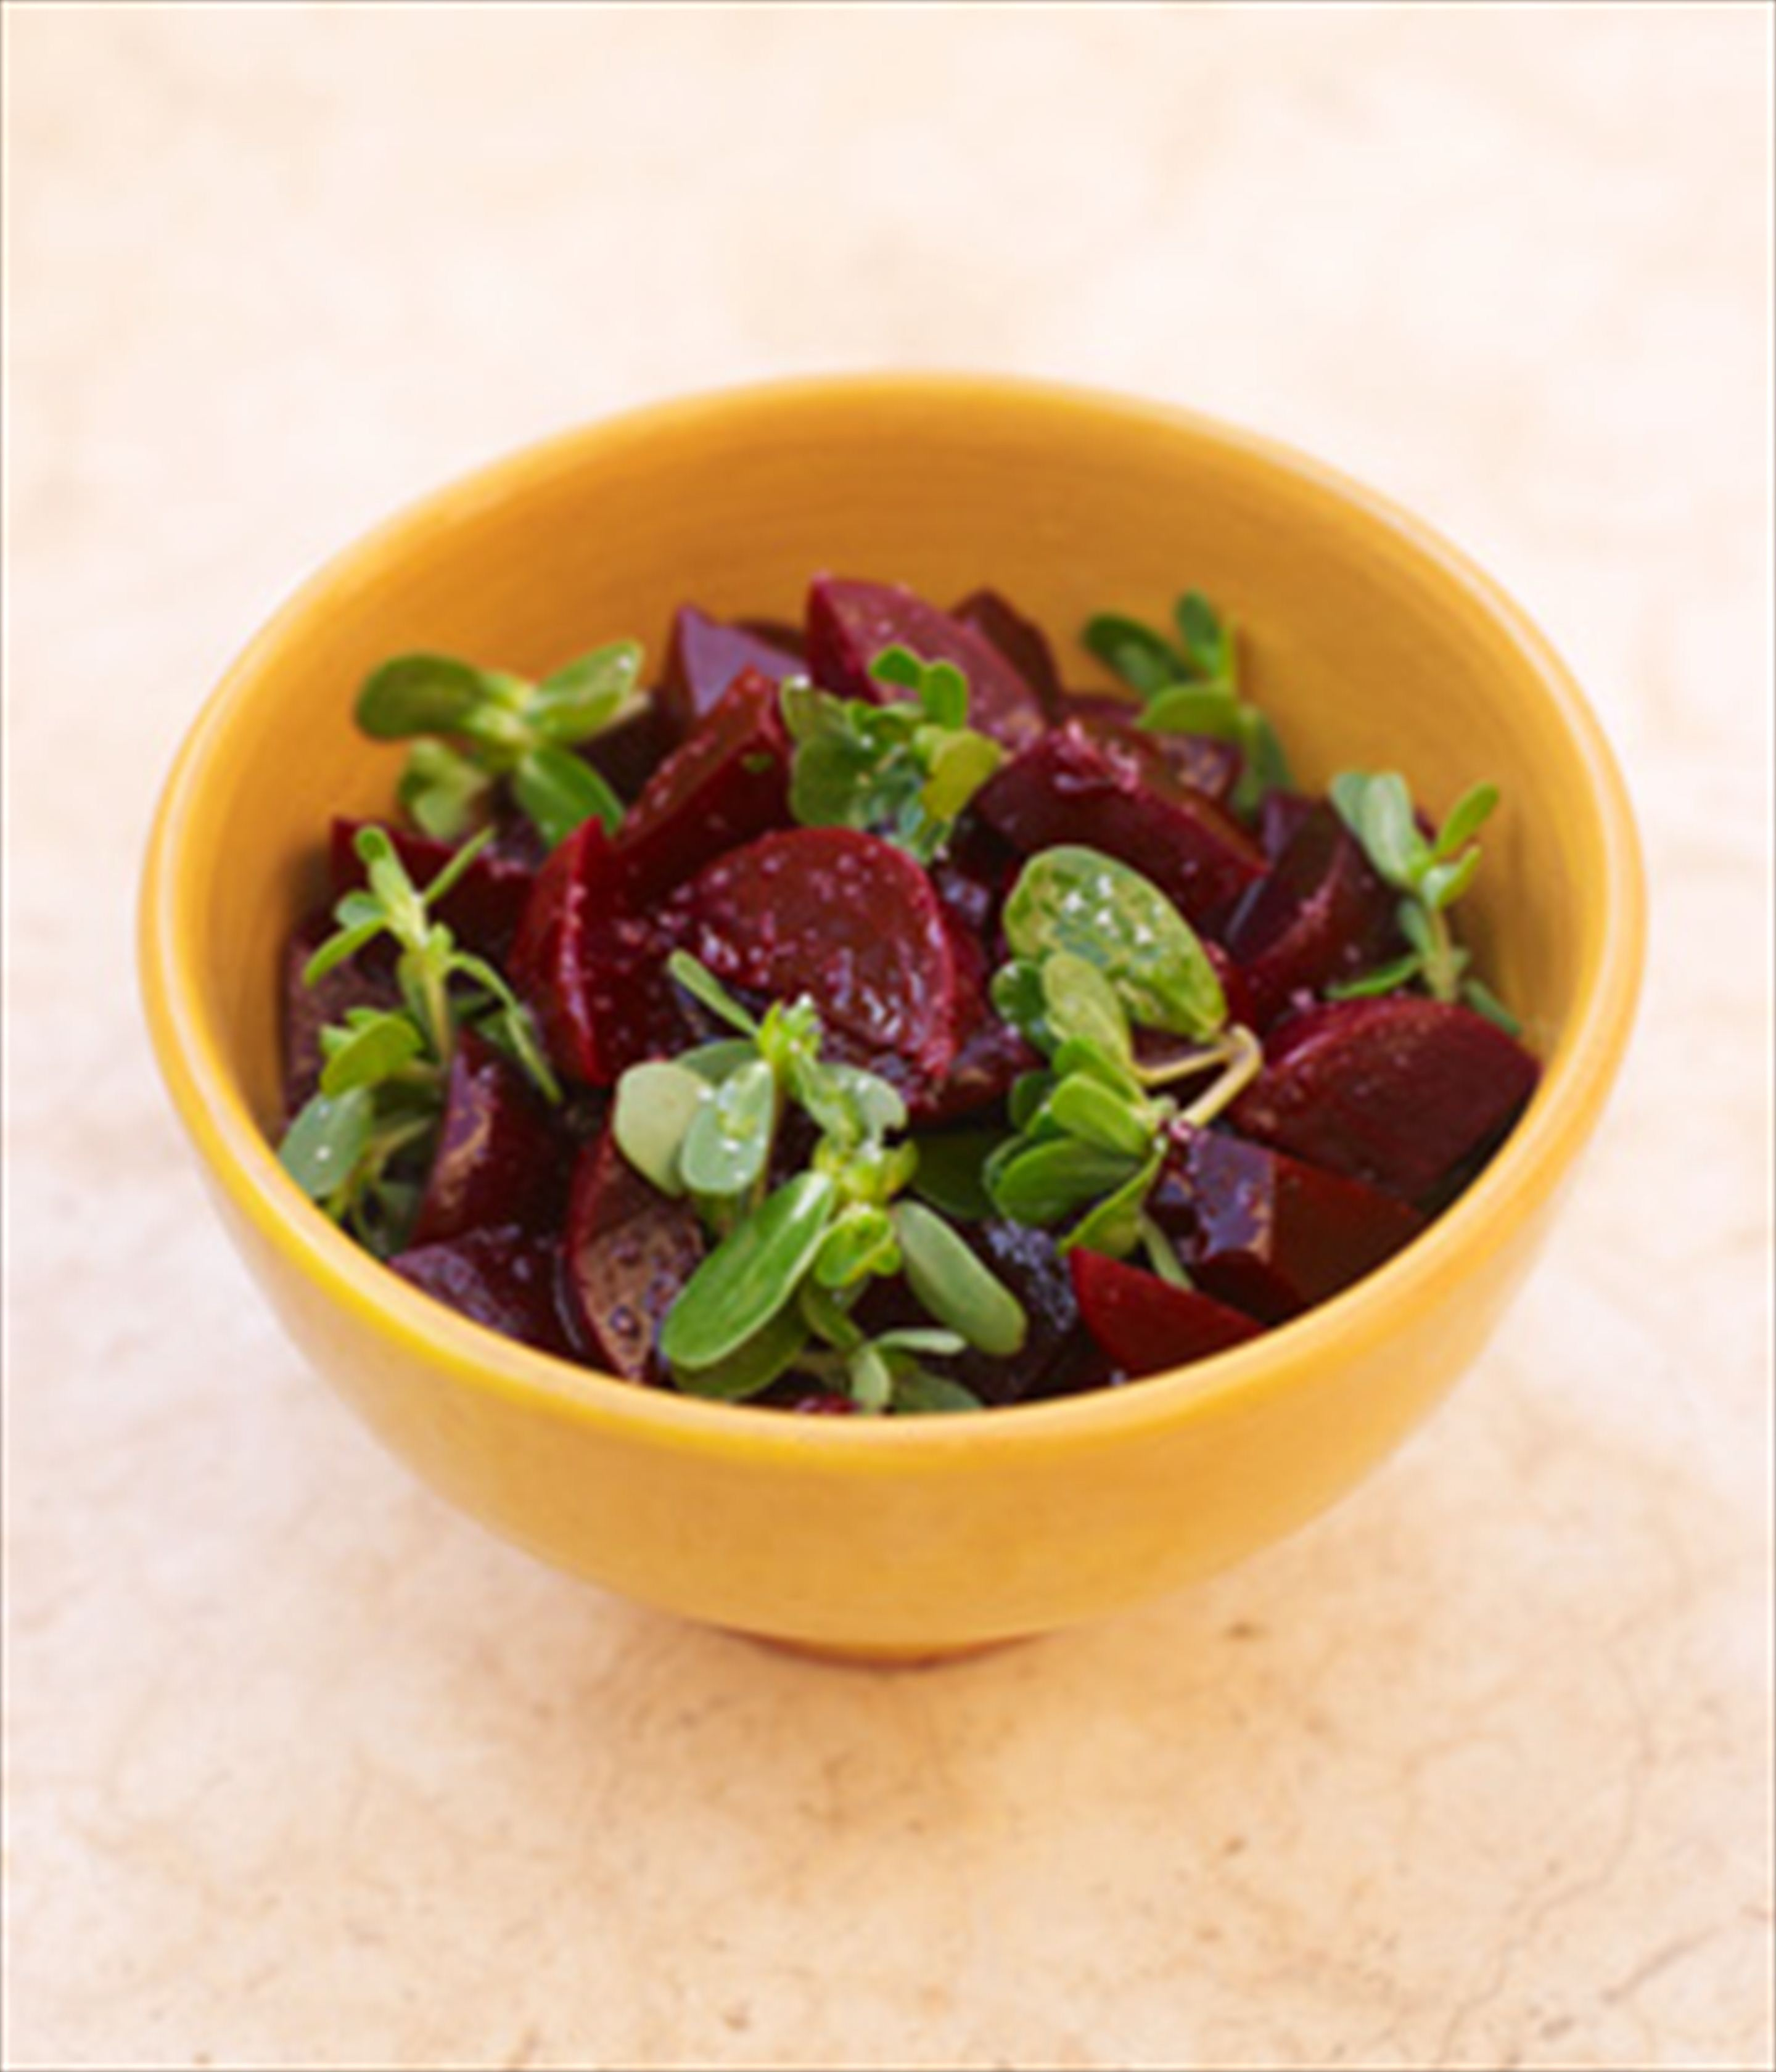 Beetroot & purslane salad